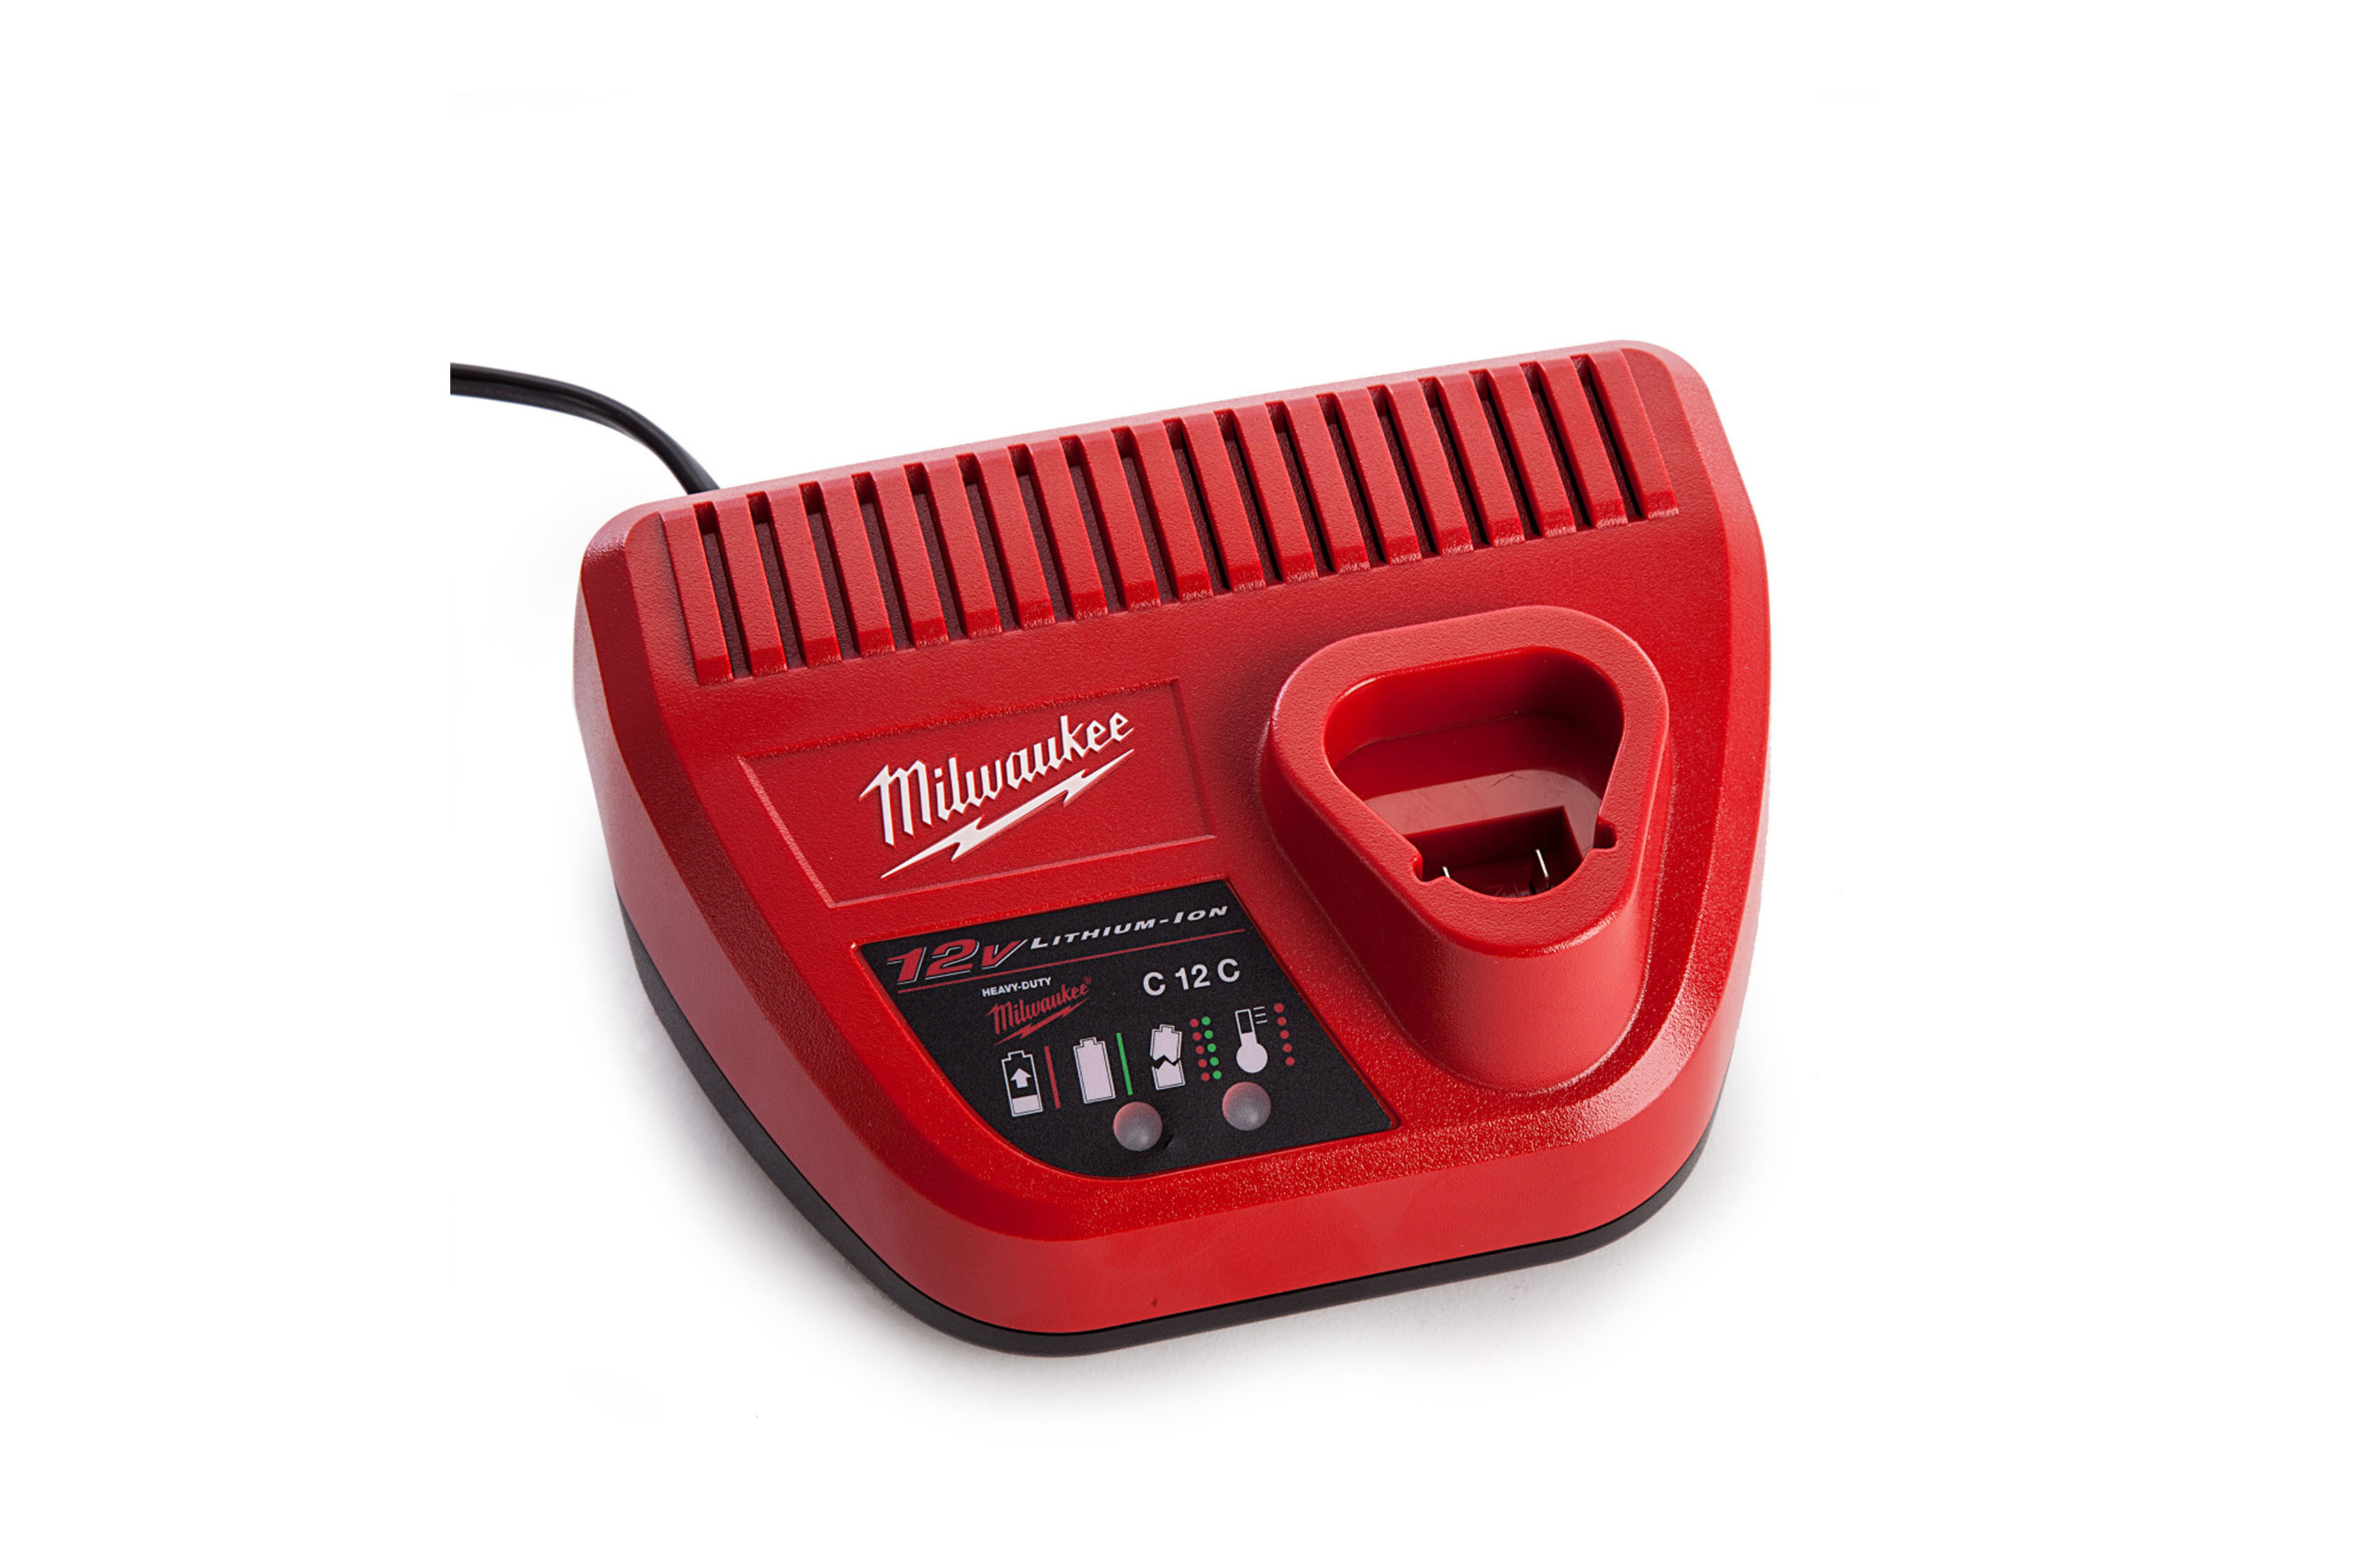 Milwaukee M12 Lithium Ion Battery Charger C12c Hardware Depot